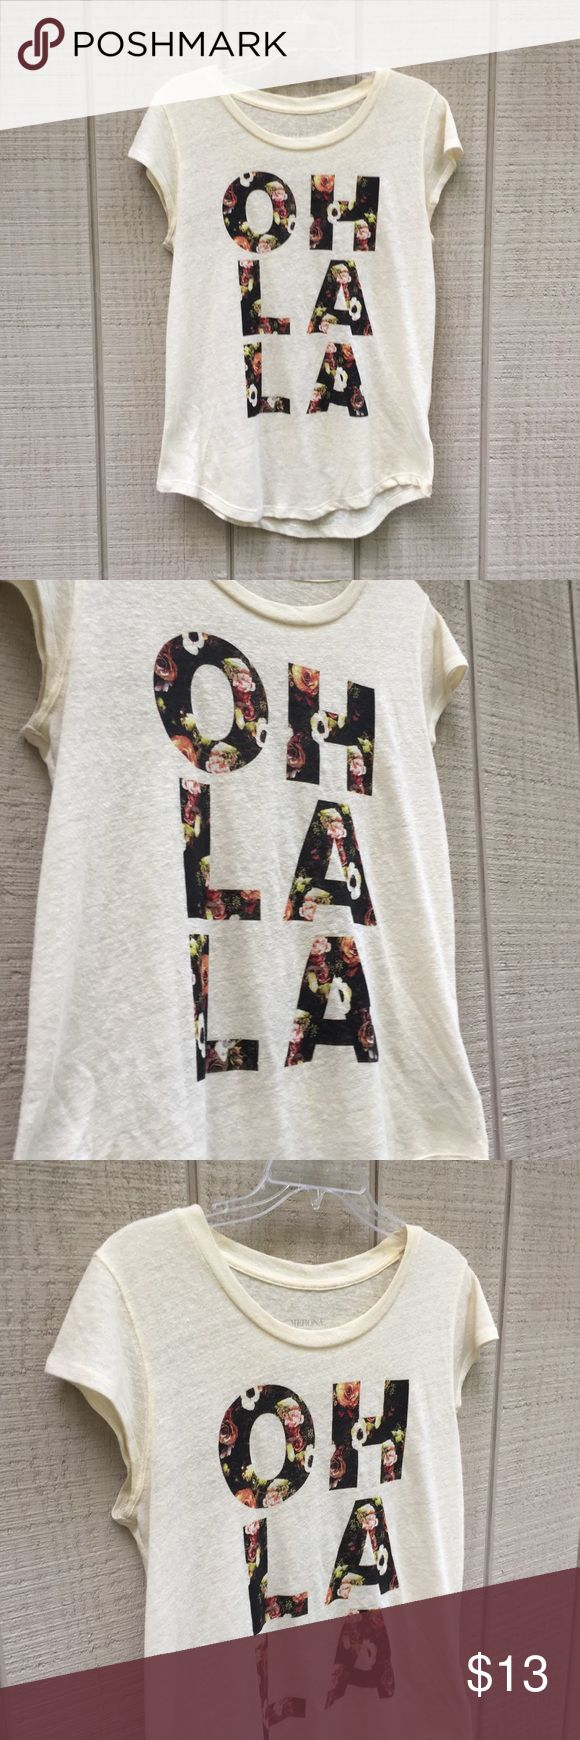 """Merona OH LA LA graphic floral appliqué tee, M This adorable Merona top channels a preppy summer vibe with its light cream base and bold floral appliqué """"OH LA LA"""" graphic. Material is a 56% linen, 44% polyester blend - material is slightly see-through, and naturally textured. Pre-owned, but in fantastic condition! Remember to bundle with other items from this closet to receive 15% off your purchase and to save on shipping! Merona Tops Tees - Short Sleeve"""